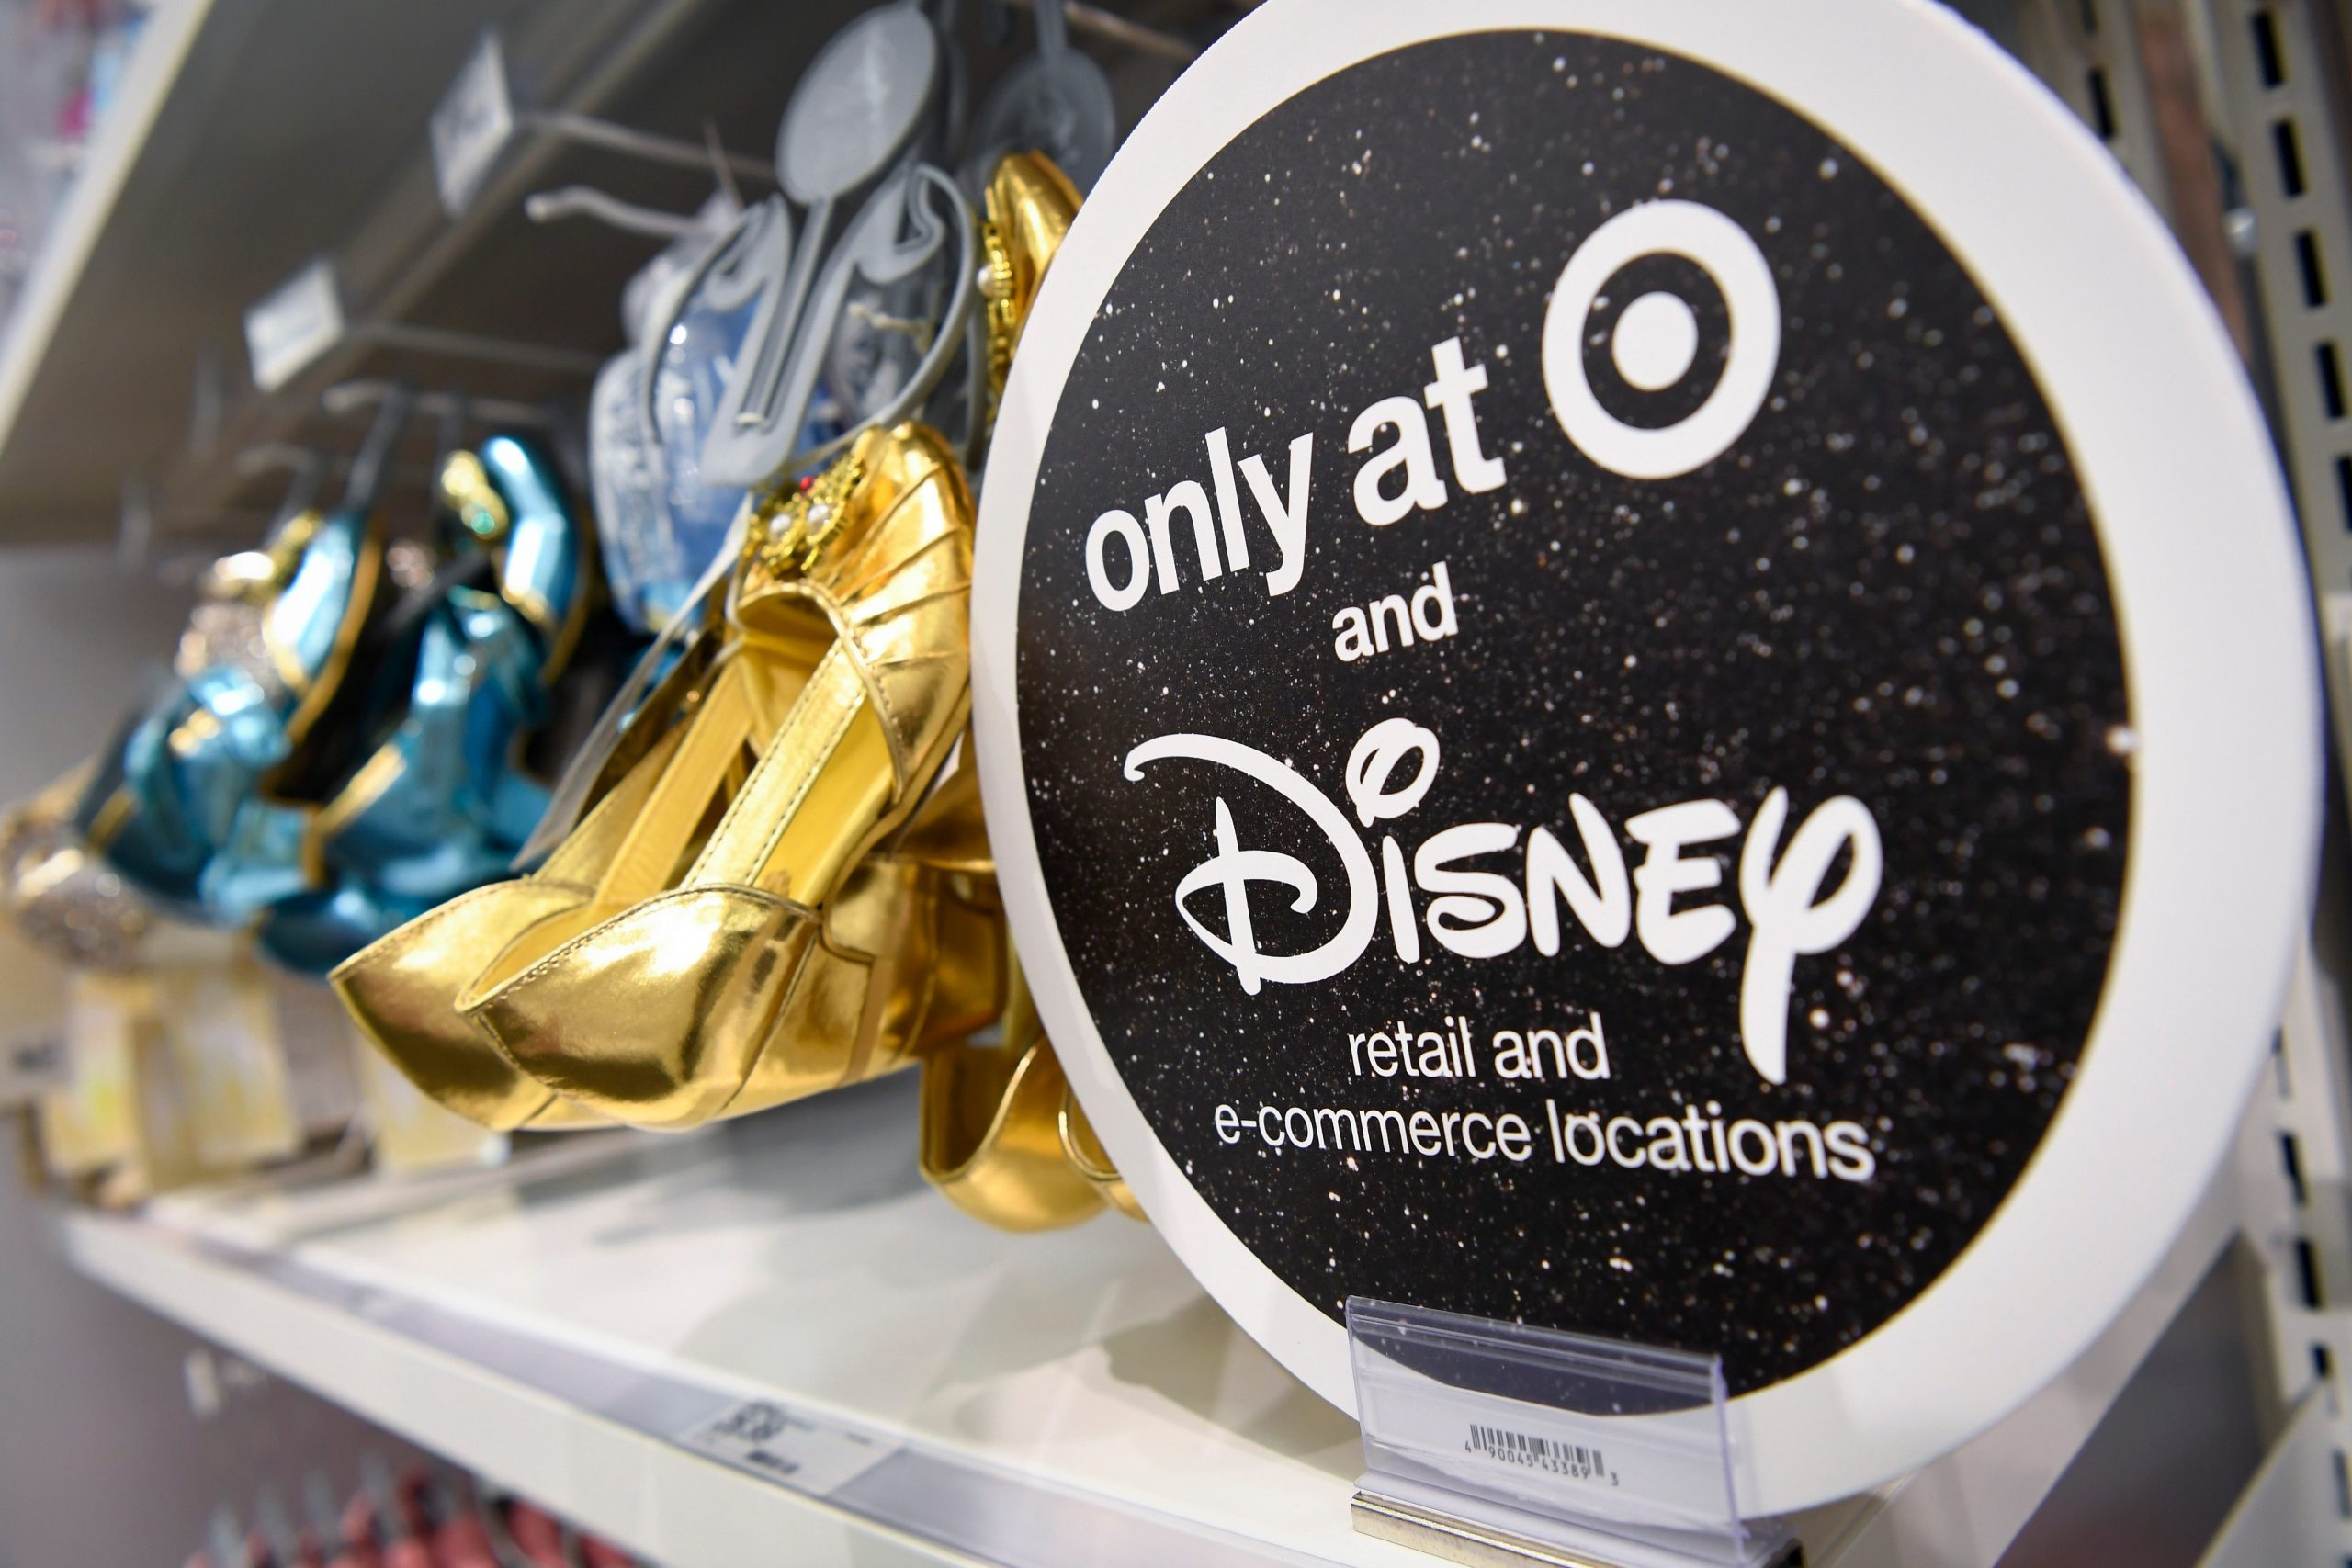 Target to add 100-plus new Disney Store locations by the end of 2021, releases top toy list